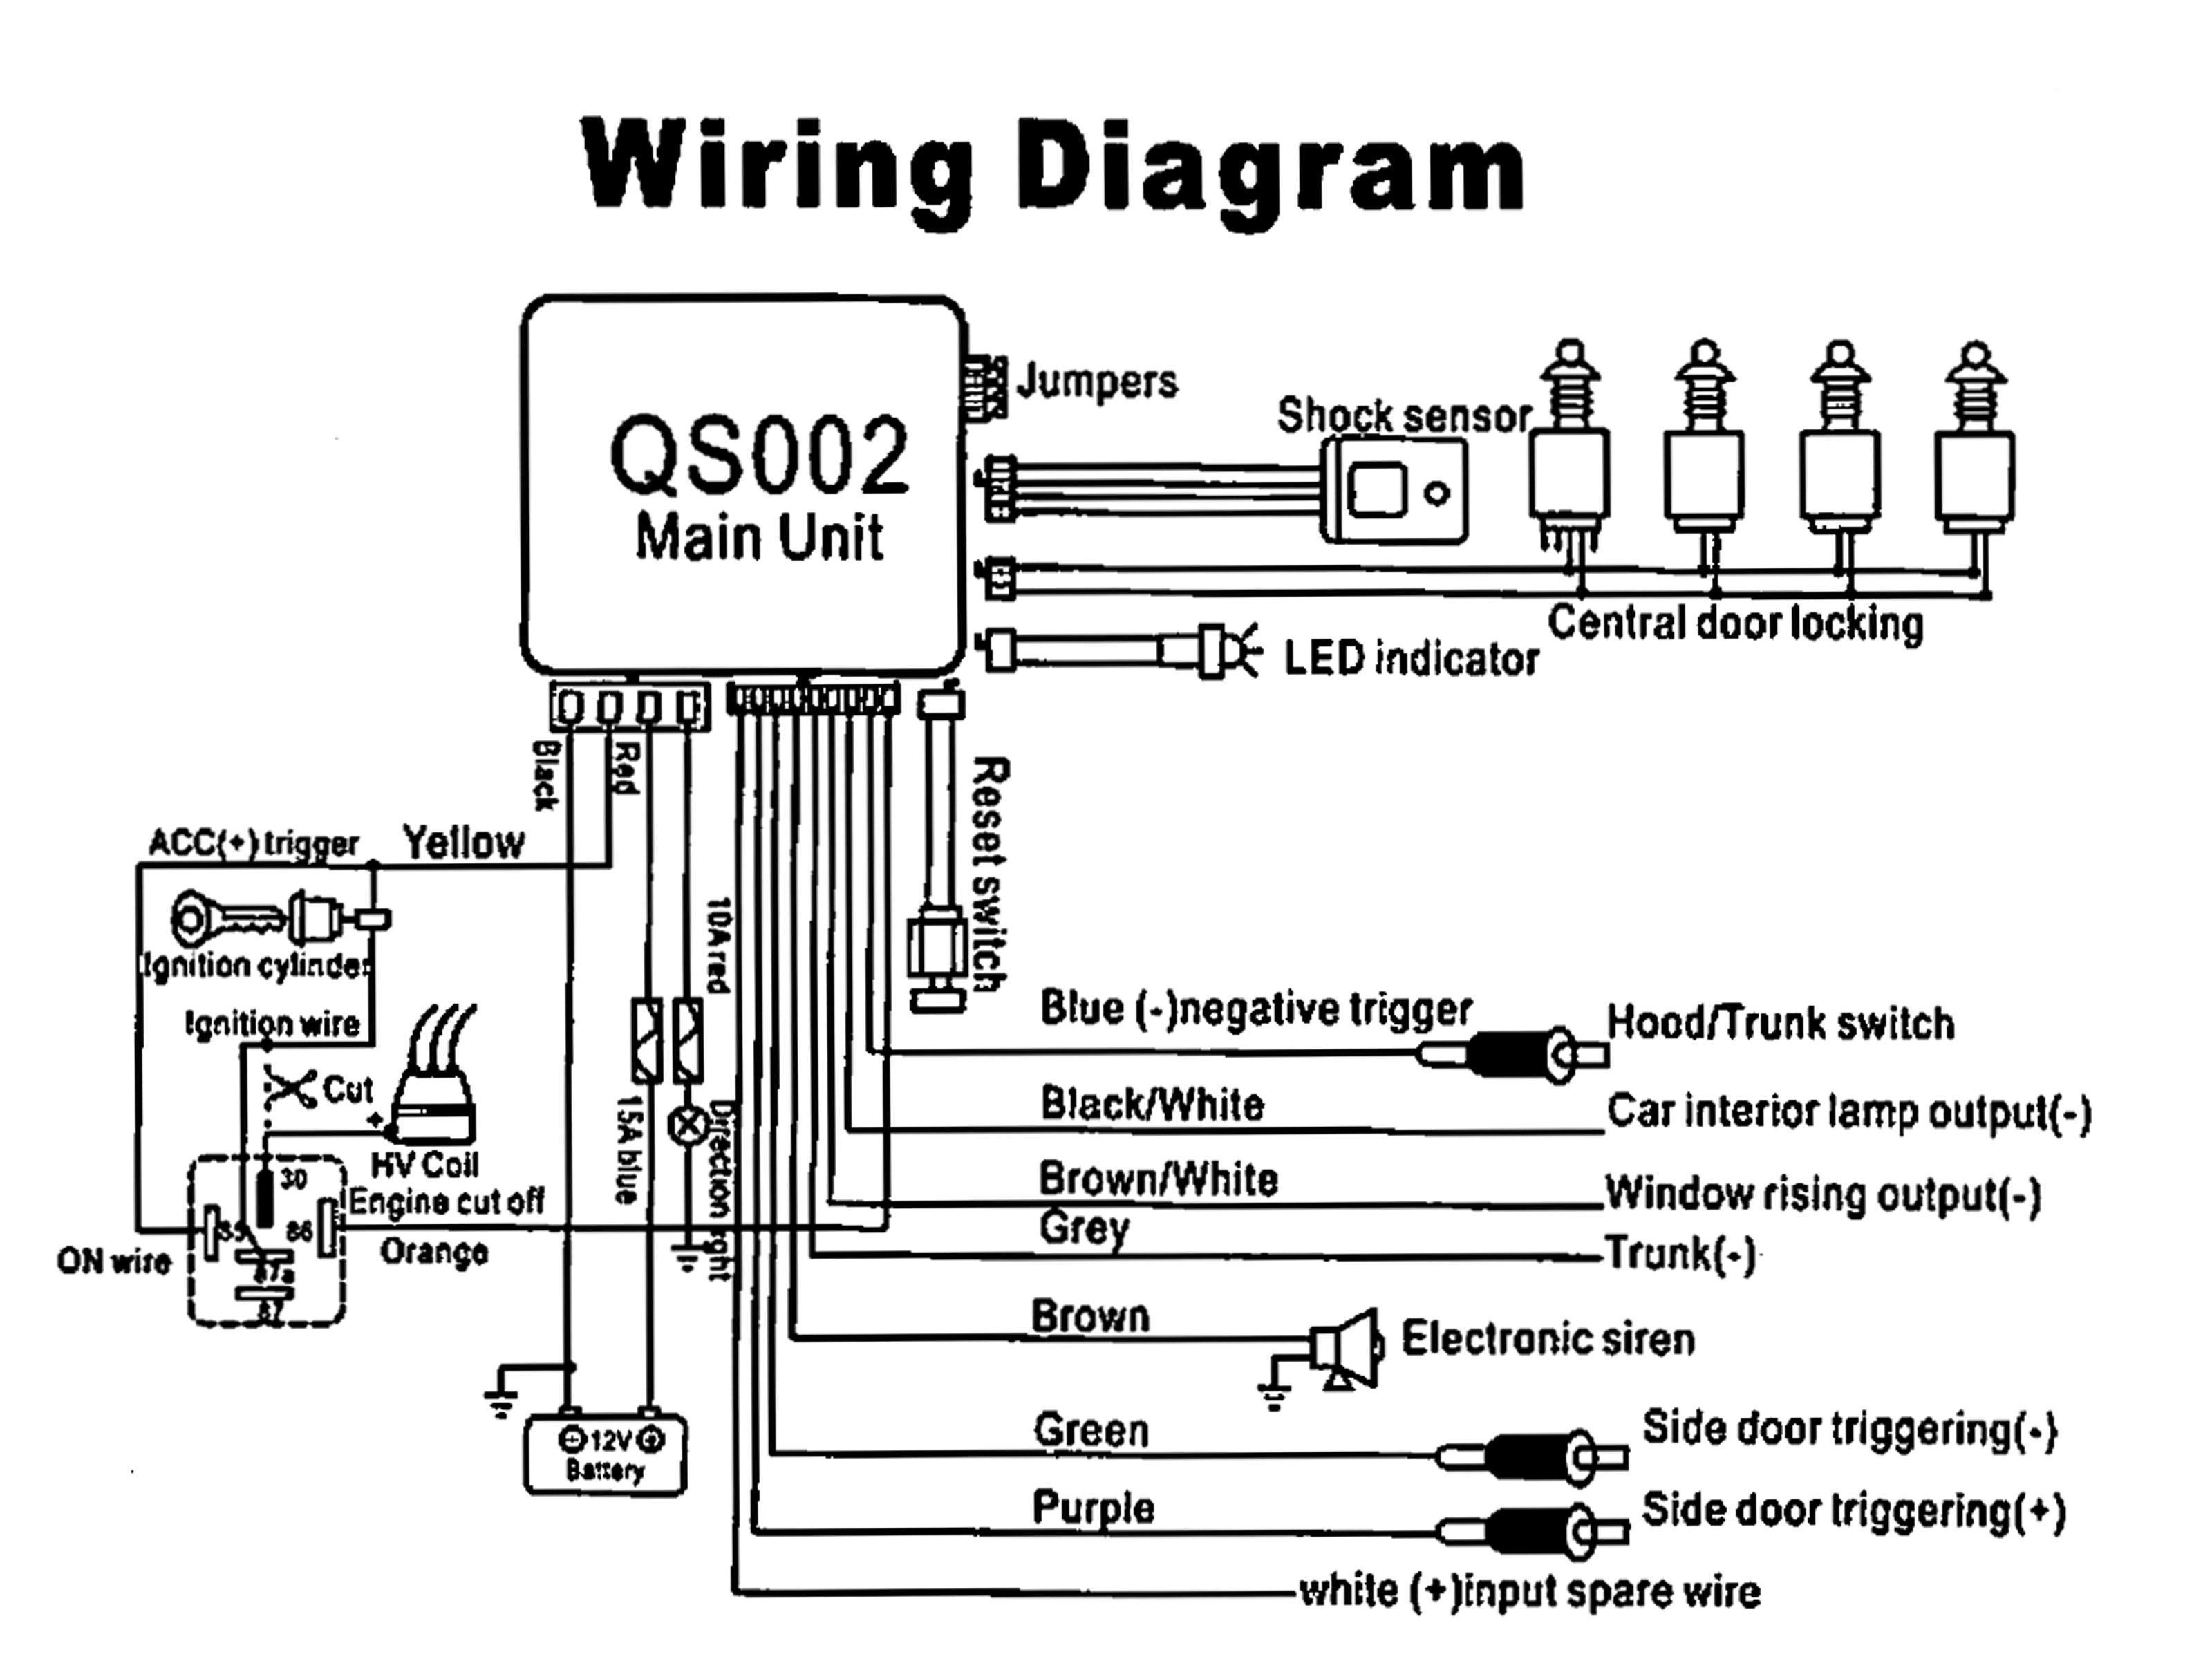 DIAGRAM] Plc Car Alarm Wiring Diagram FULL Version HD Quality Wiring Diagram  - CRONESMPDF.ARTEMISMAIL.FRcronesmpdf.artemismail.fr